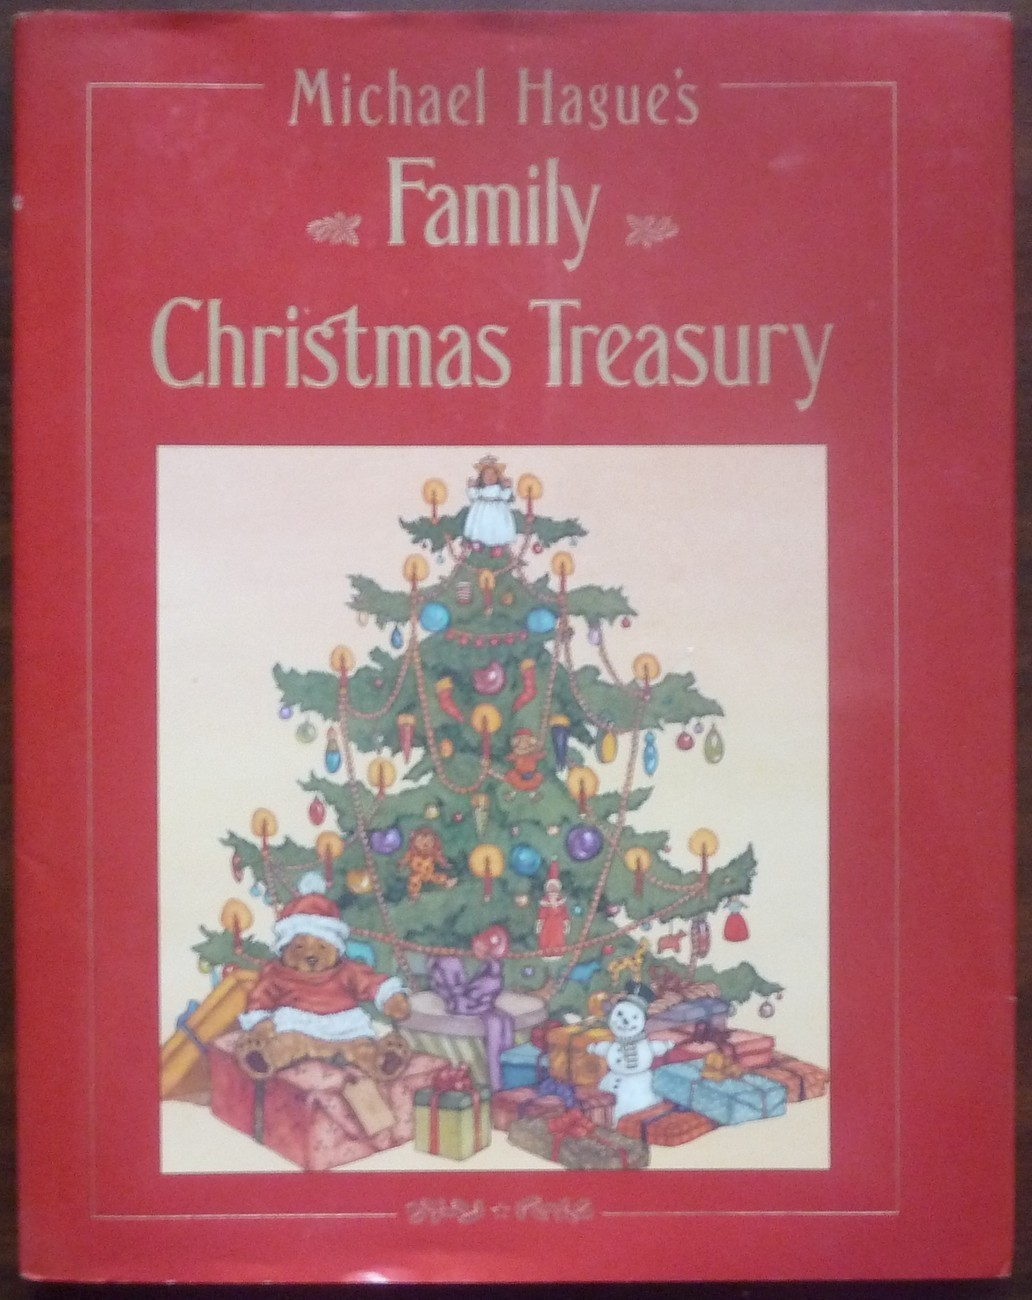 Michael Hague's Family Christmas Treasury